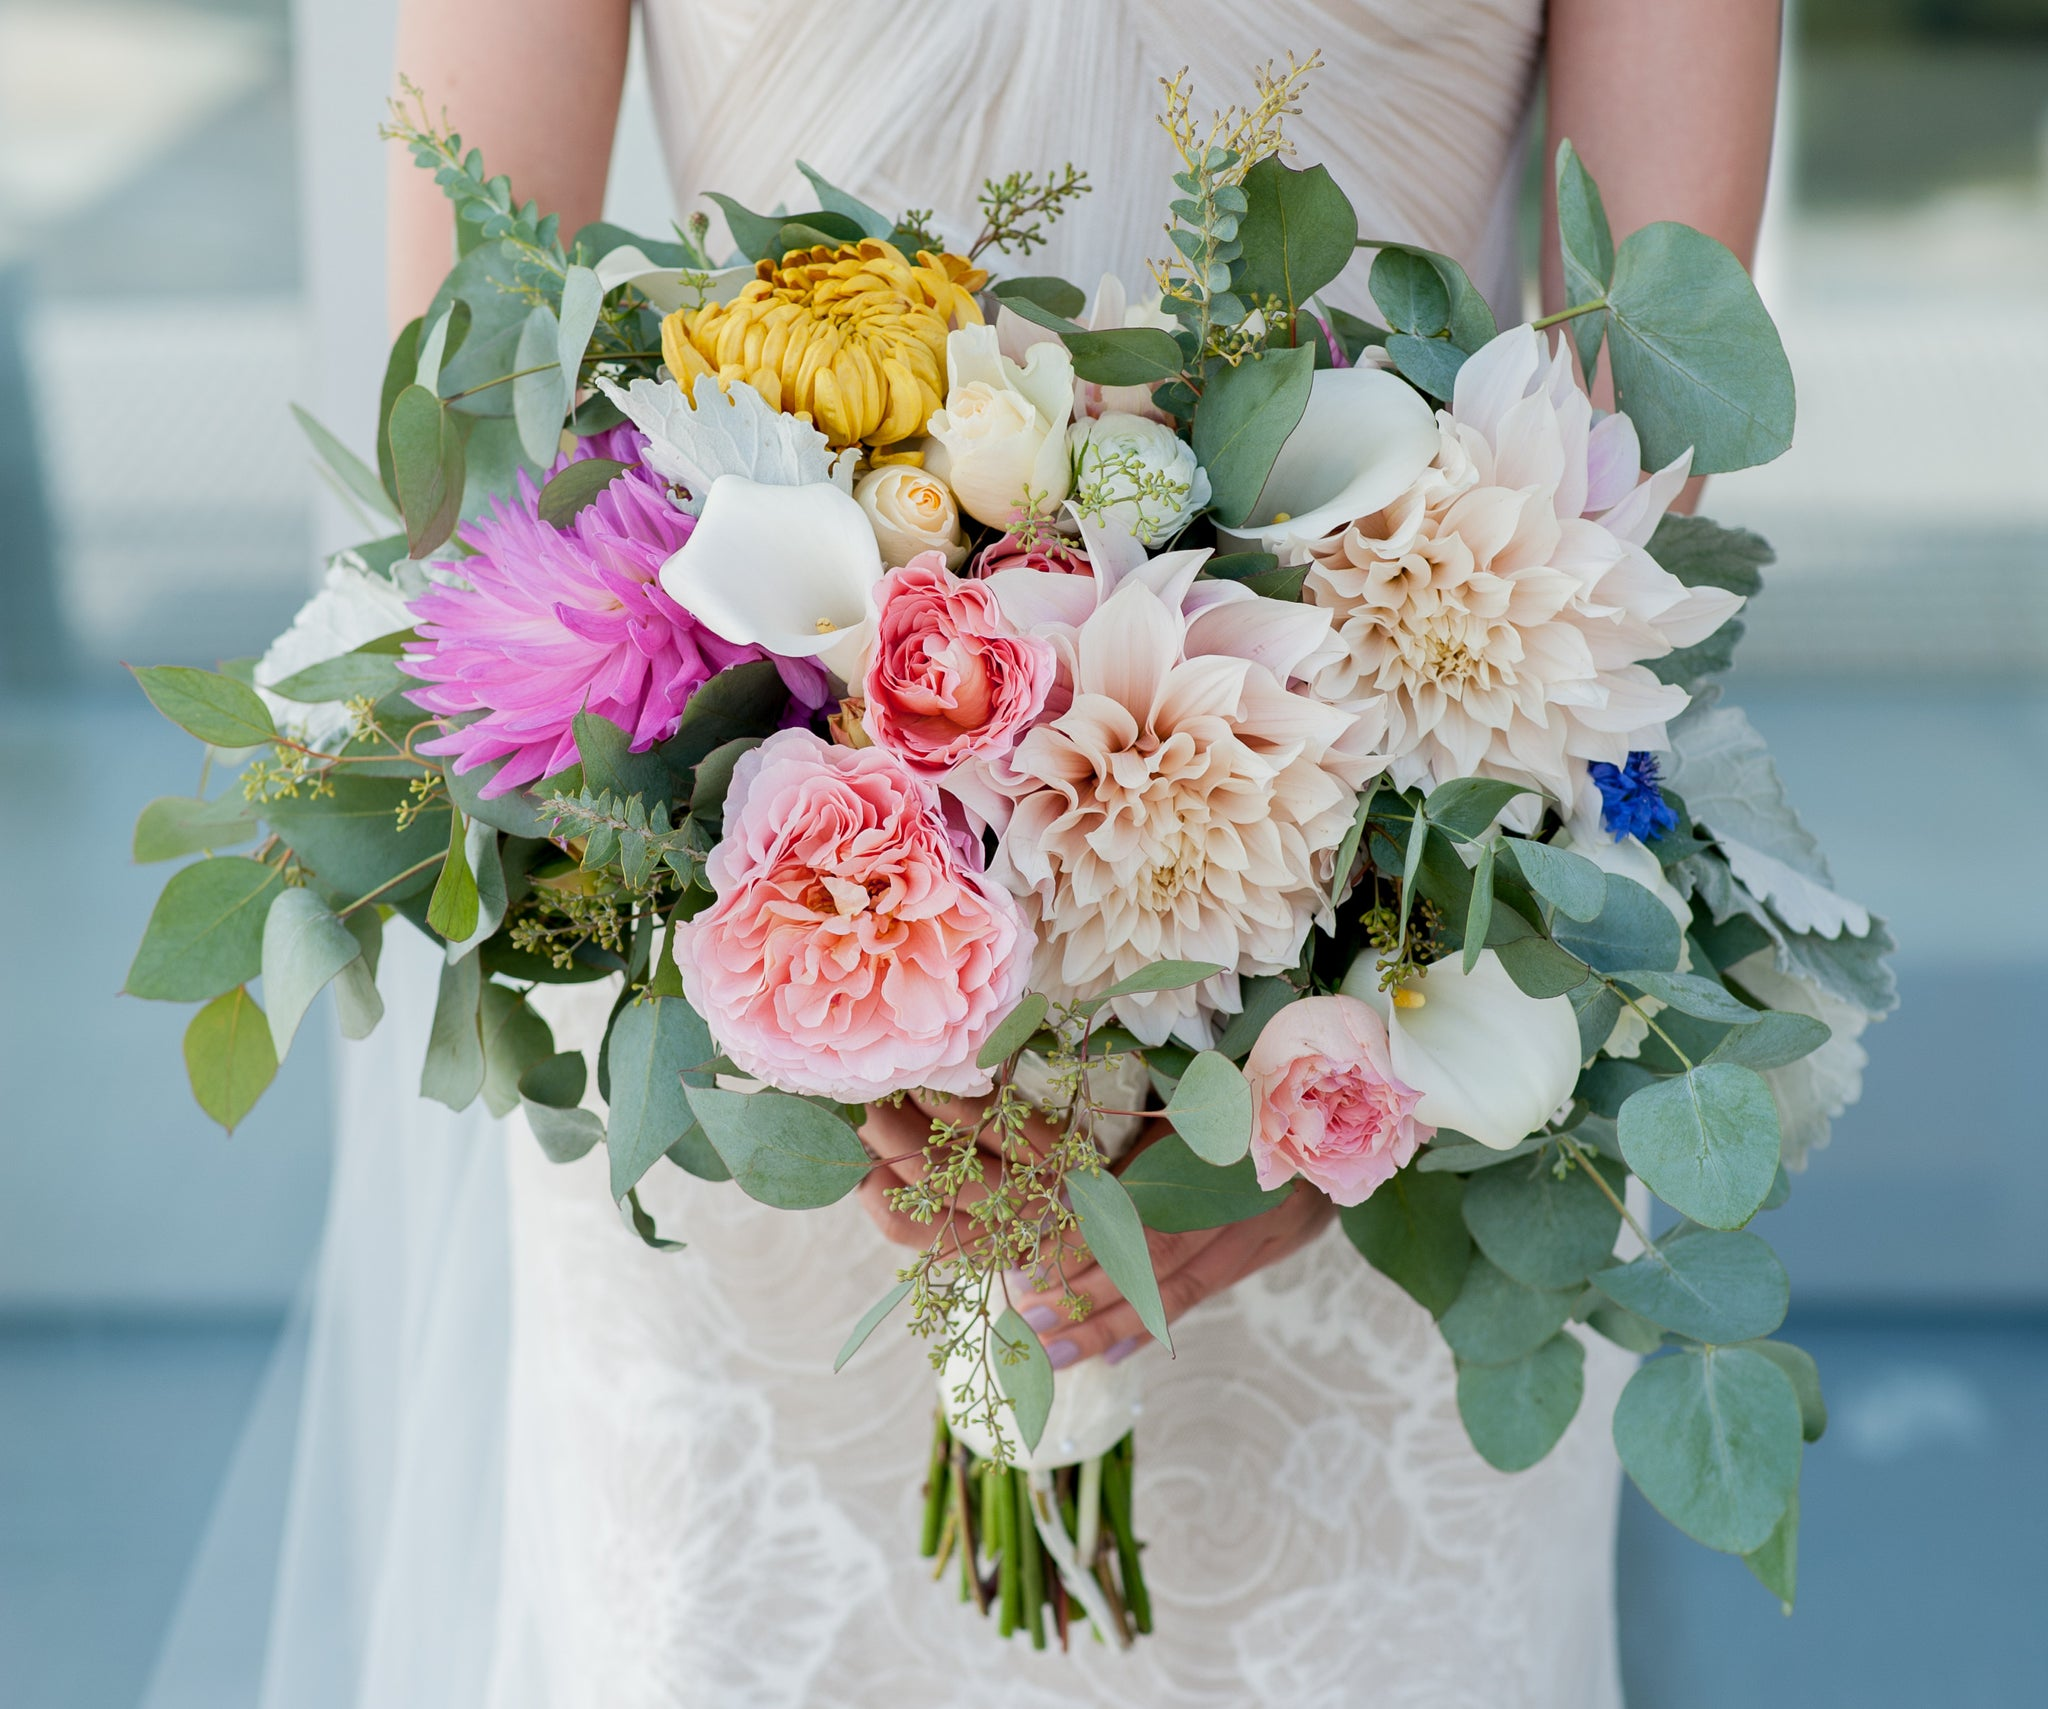 Lush and natural Bridal Bouquet for a wedding at Cal by Gorgeous and Green